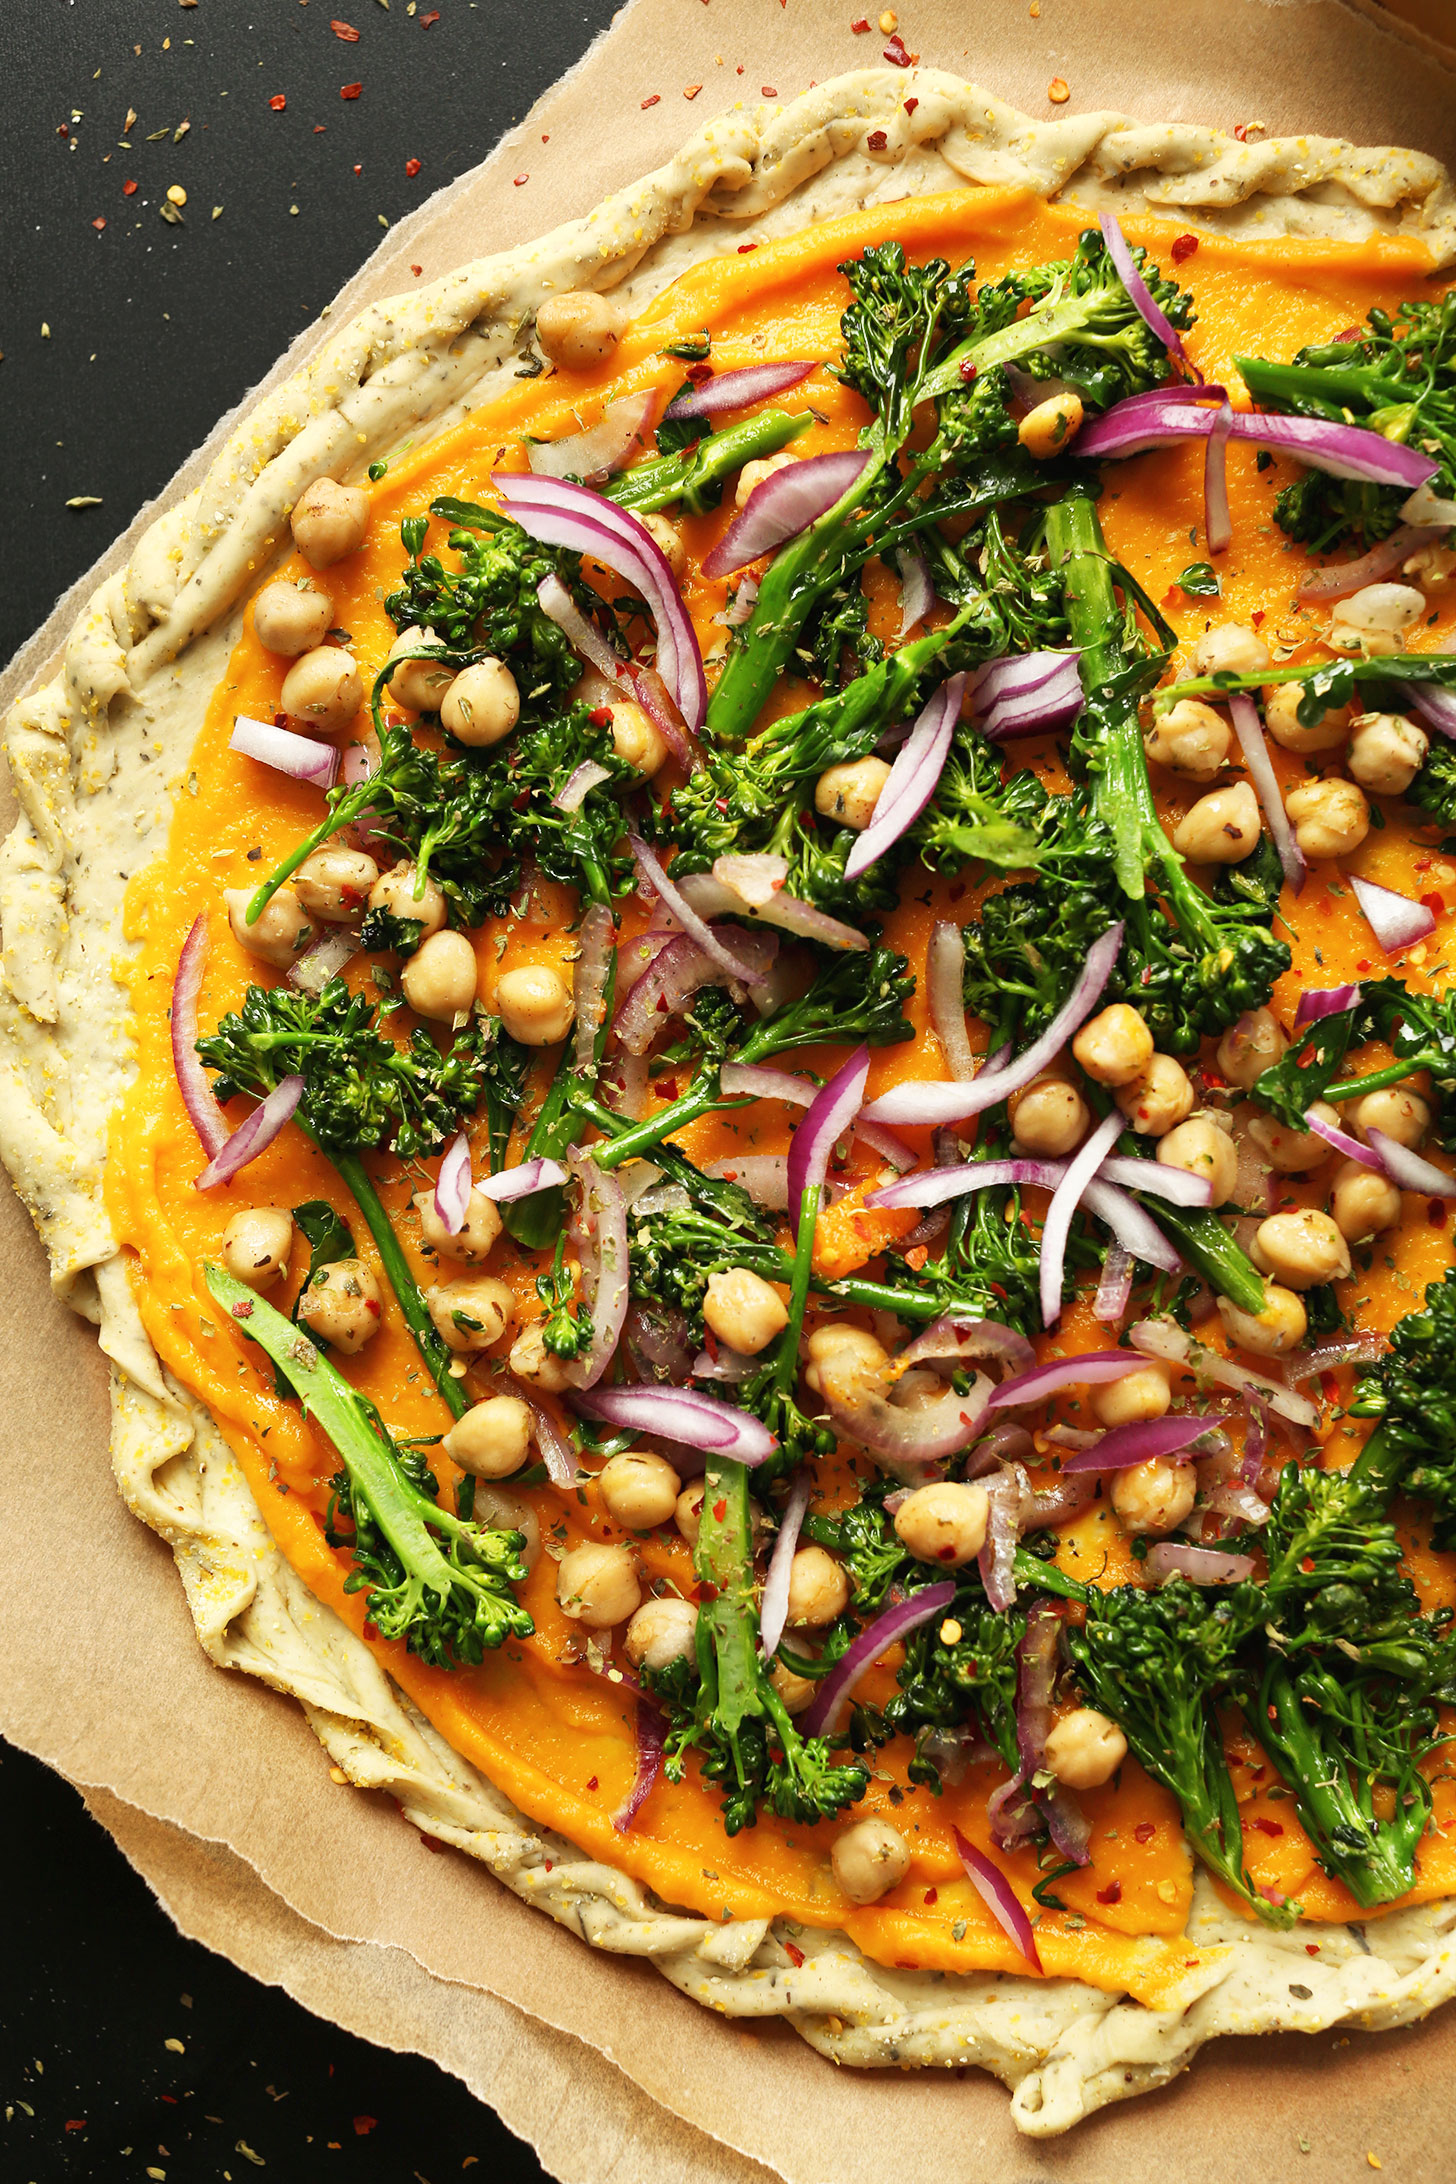 Homemade vegan pizza made with butternut squash sauce and lots of vegetables